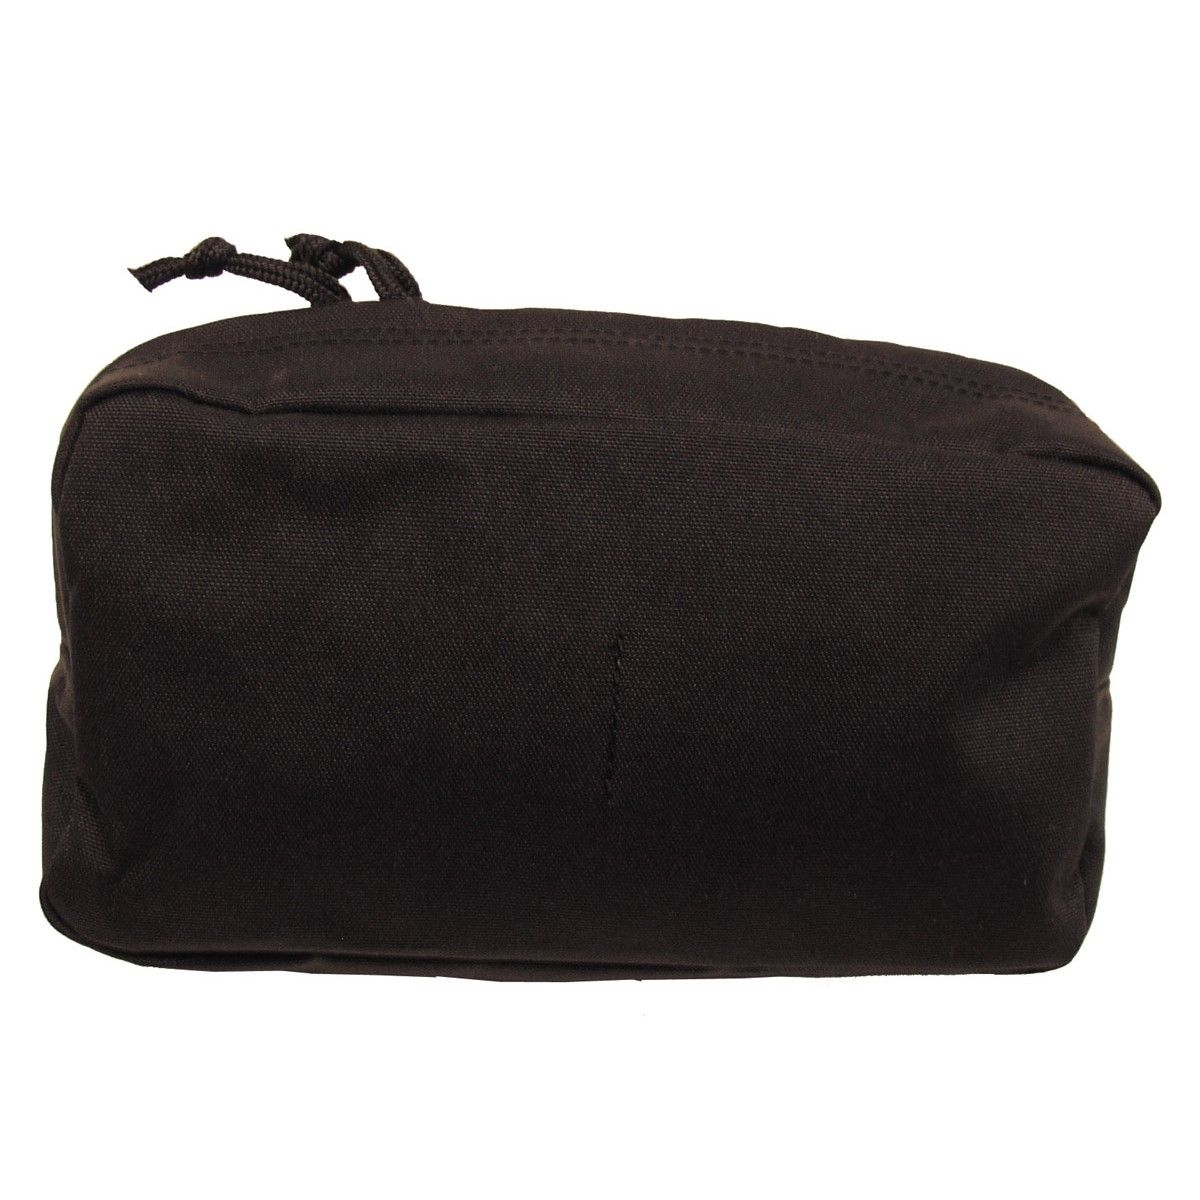 Mfh Large Utility Pouch Black